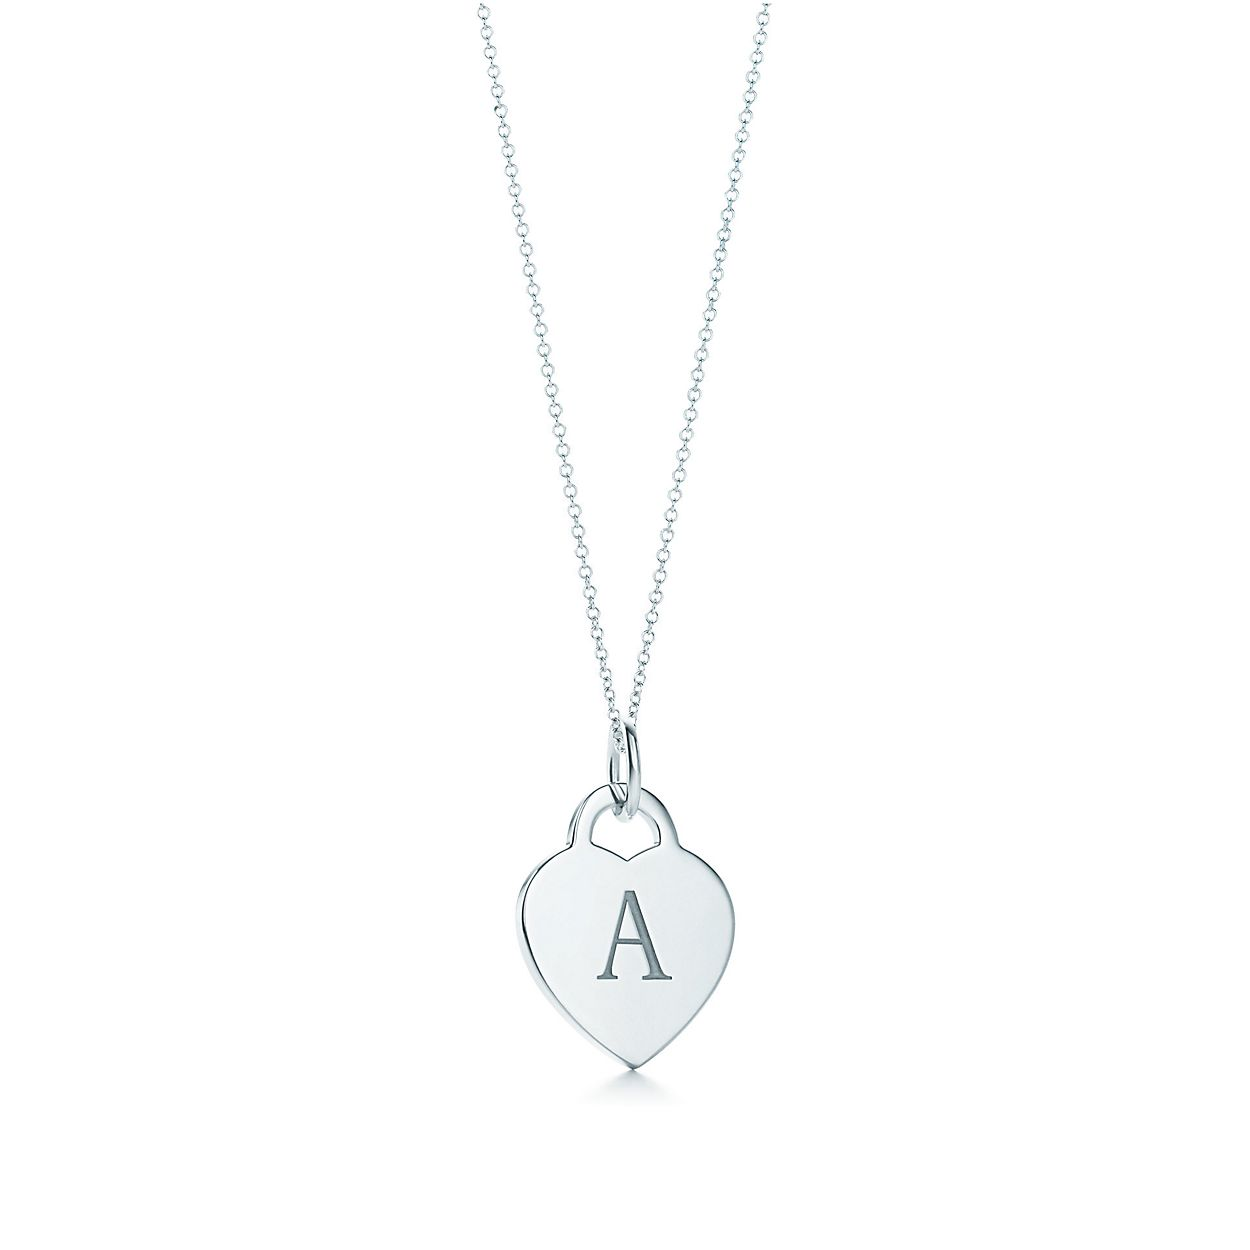 Tiffany Charms alphabet charm in sterling silver Letters A-Z available - Size P Tiffany & Co. 7gvYI6tm5